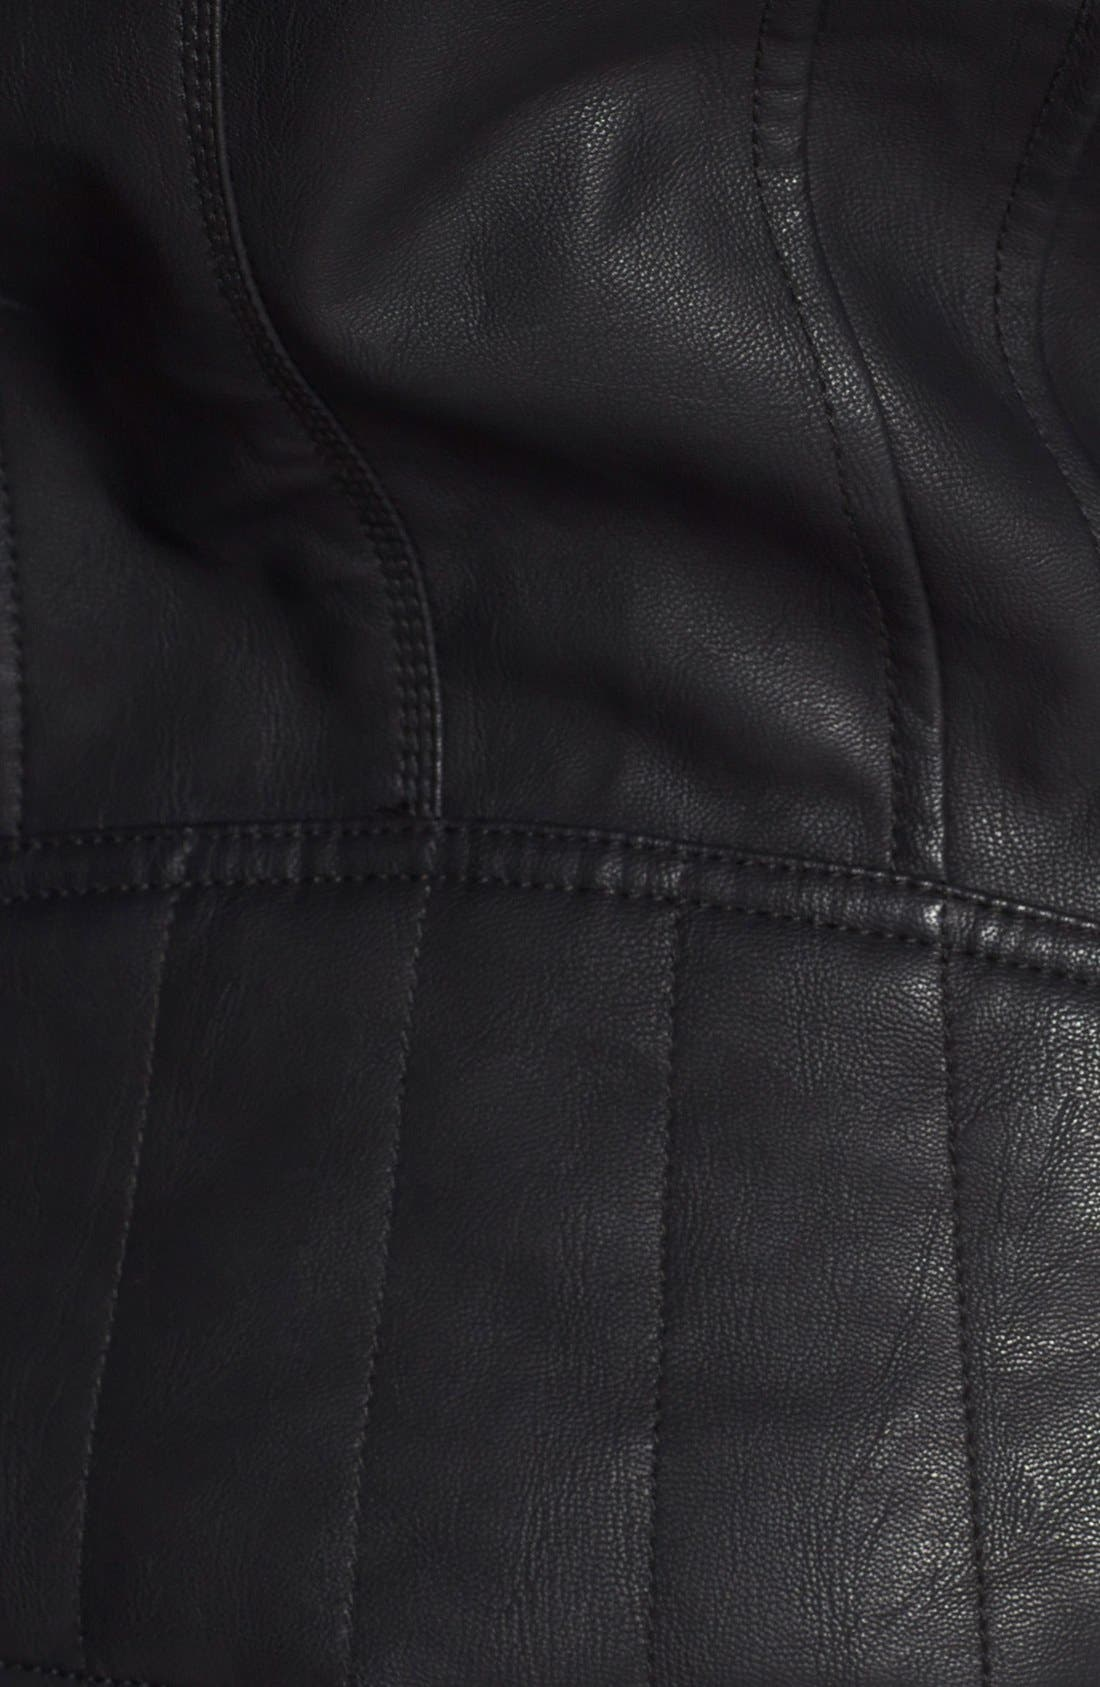 Alternate Image 3  - GUESS Faux Leather Moto Jacket with Cable Knit Hooded Bib Inset (Online Only)